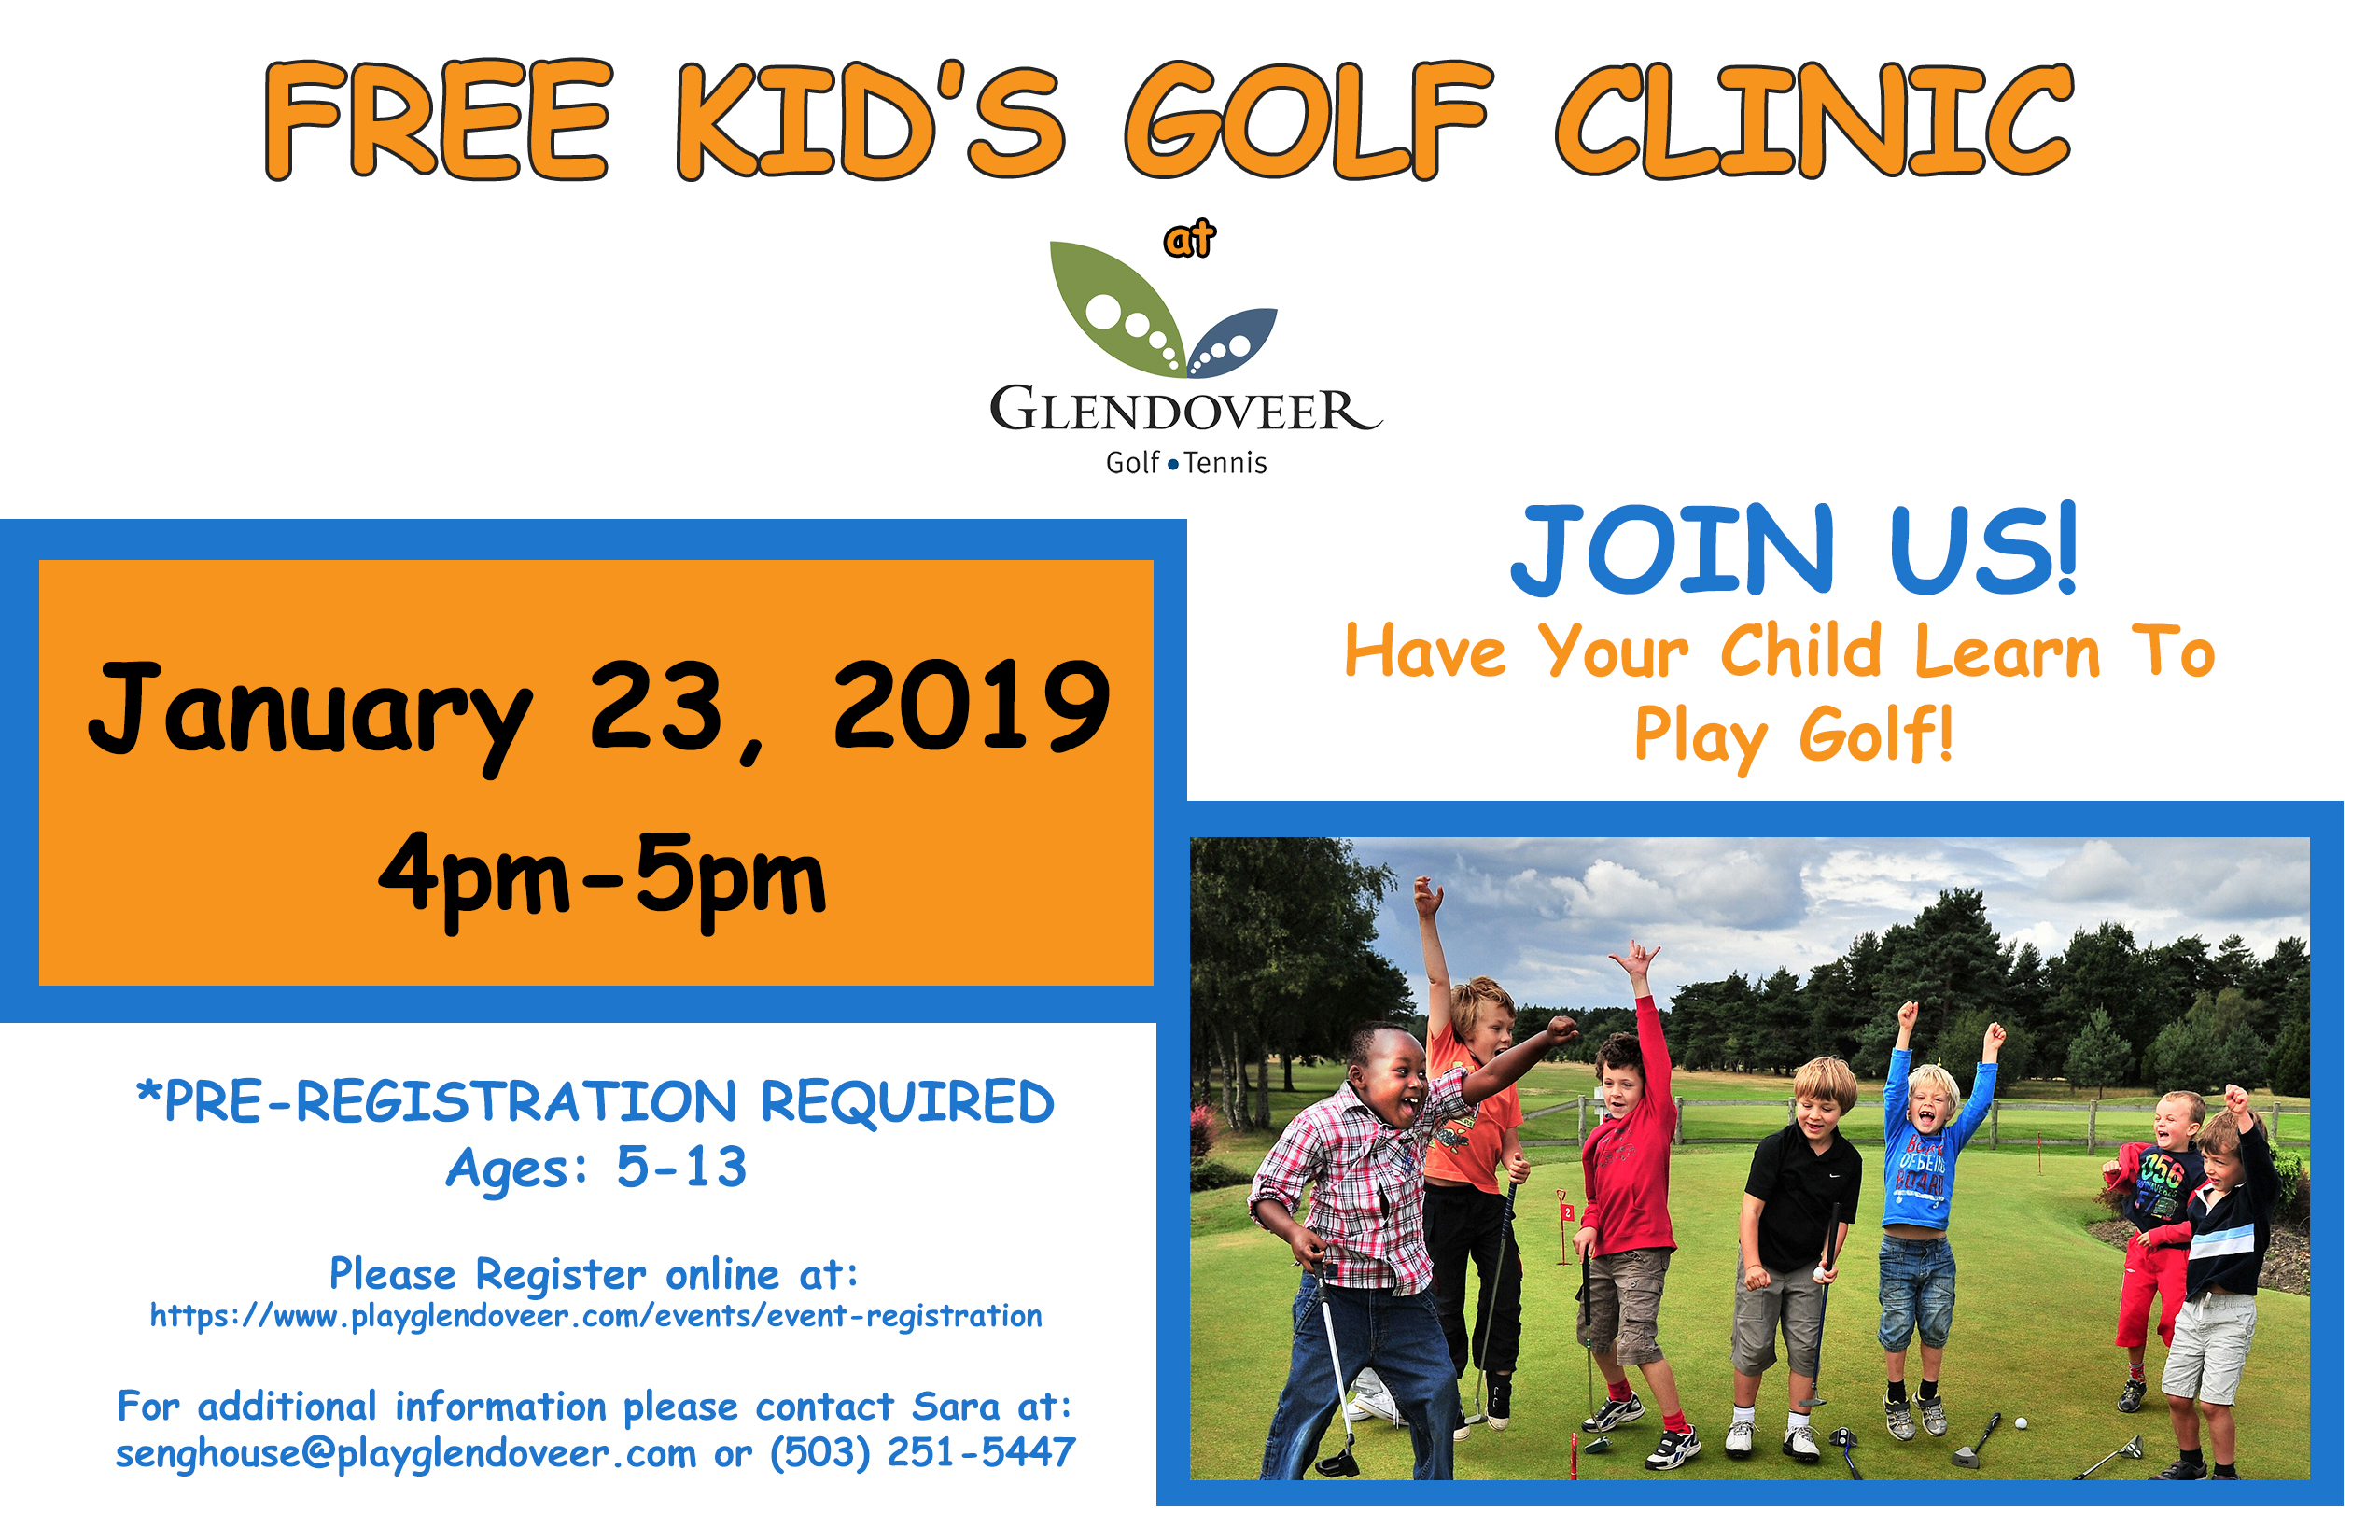 Free Kid's Golf Clinic